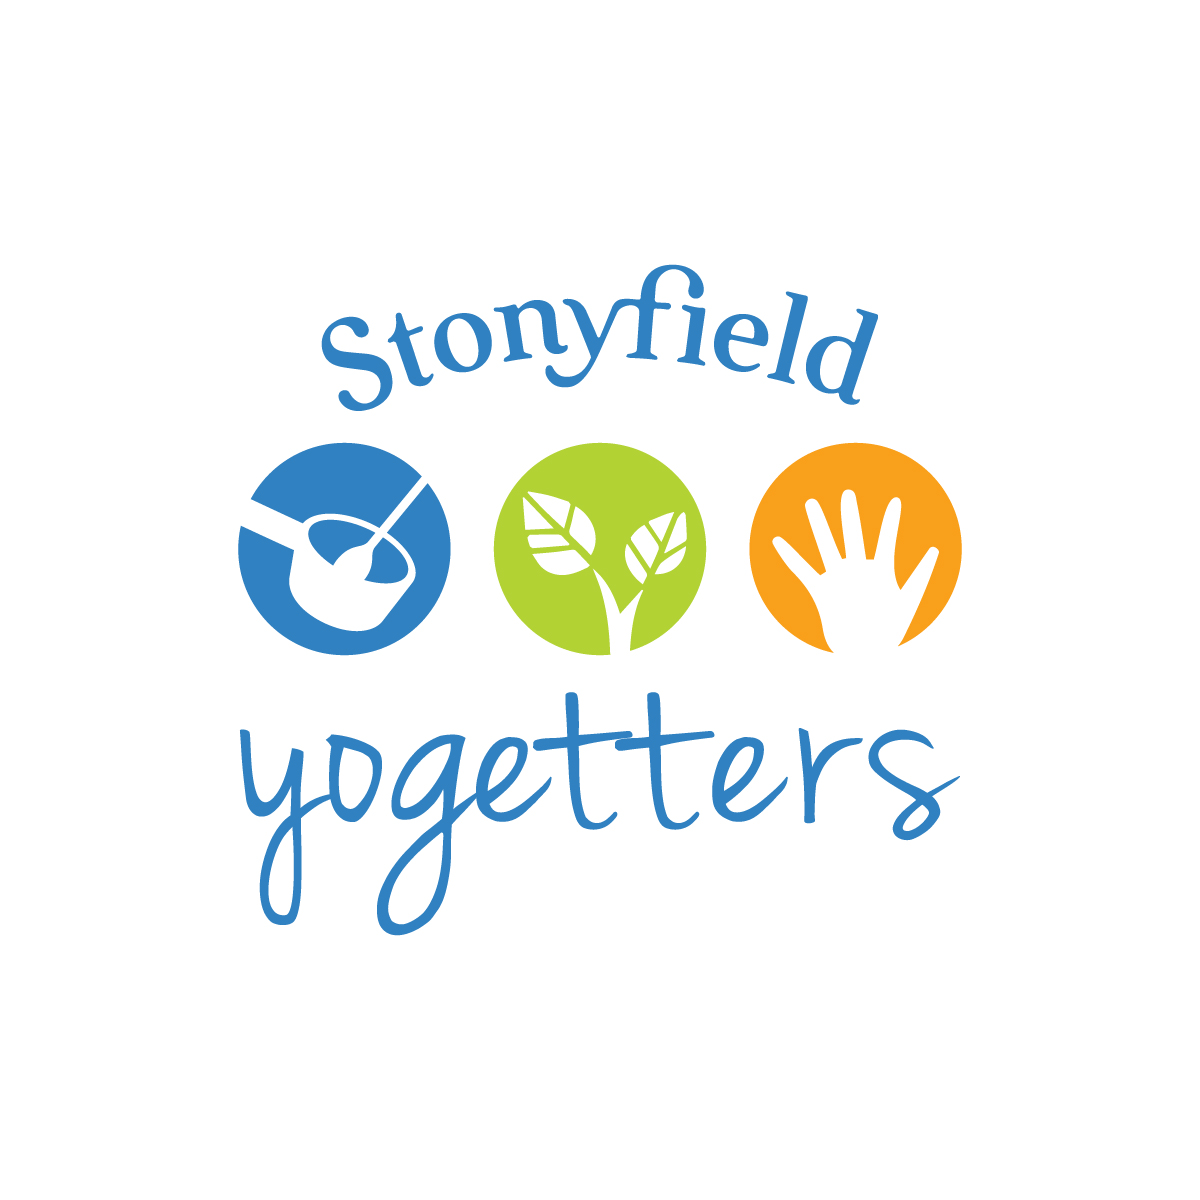 Yogetters-logo-3color-final